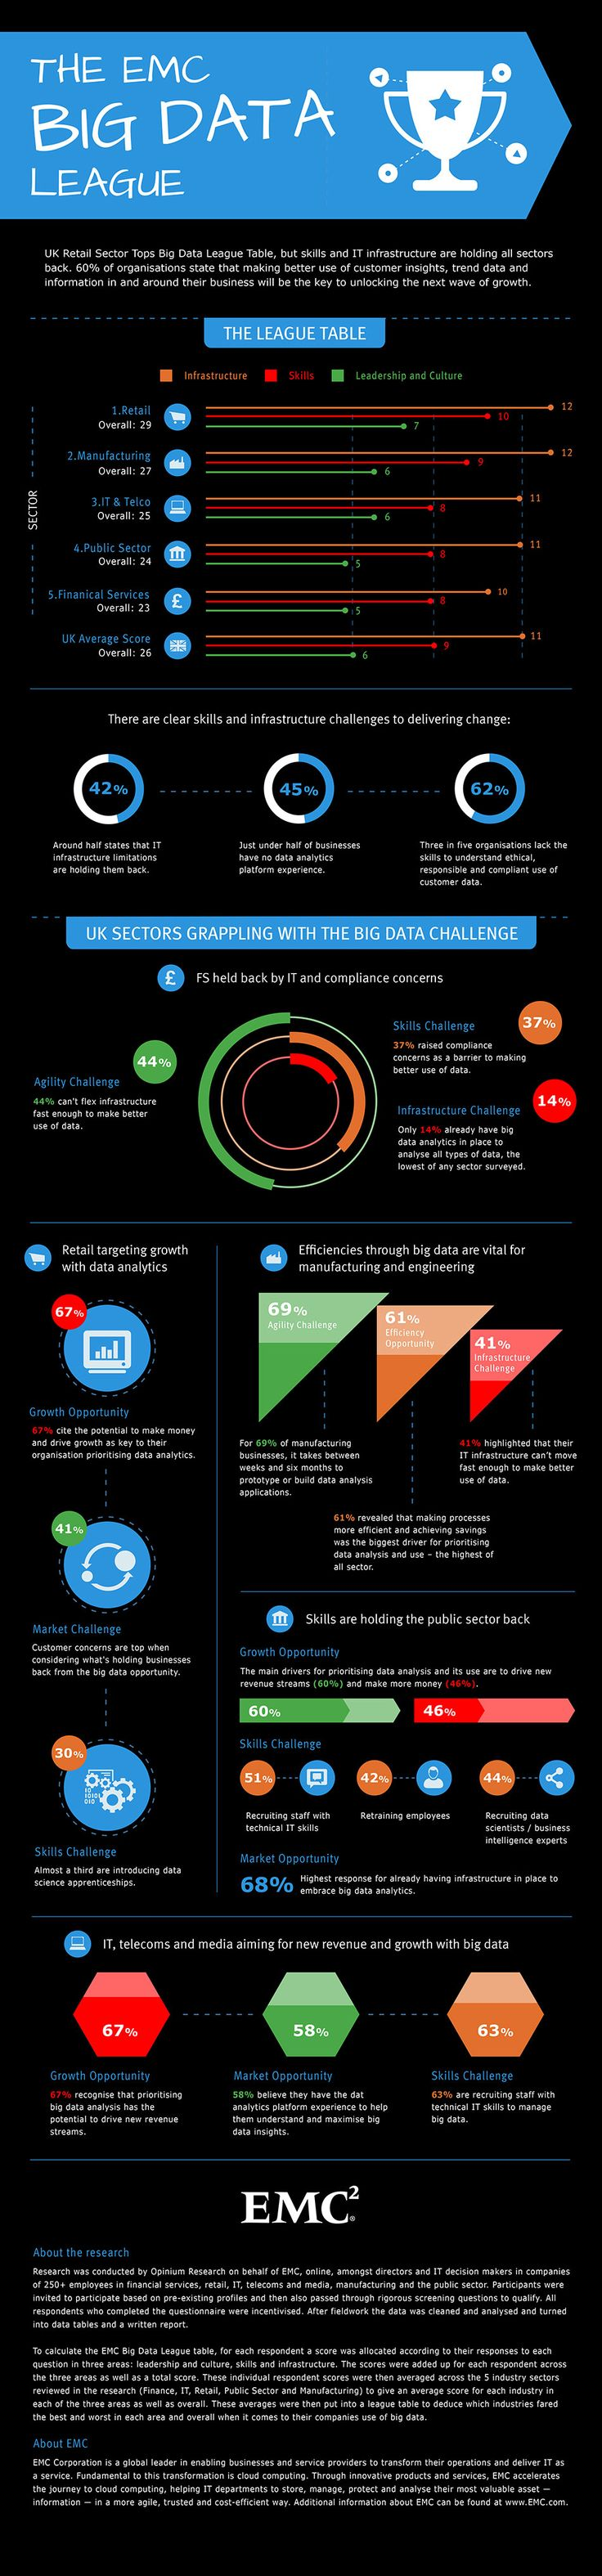 The EMC Big Data League Infographic